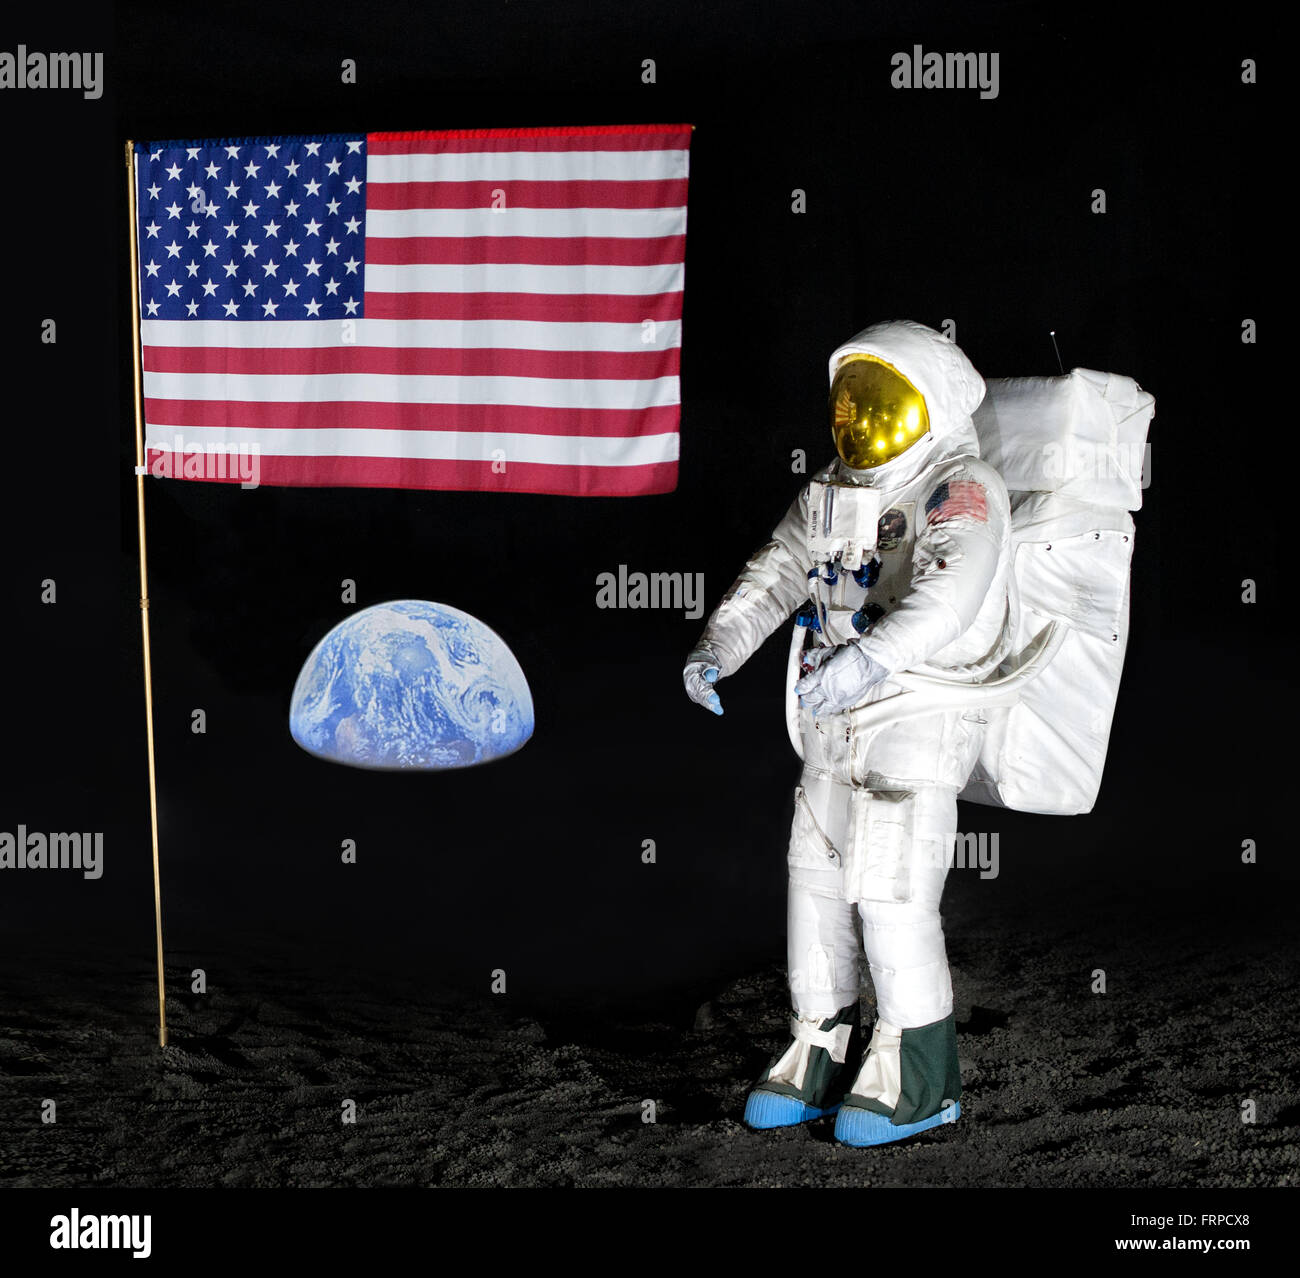 Model of single American NASA astronaut for display about lunar exploration with posted flag far from earth - Stock Image